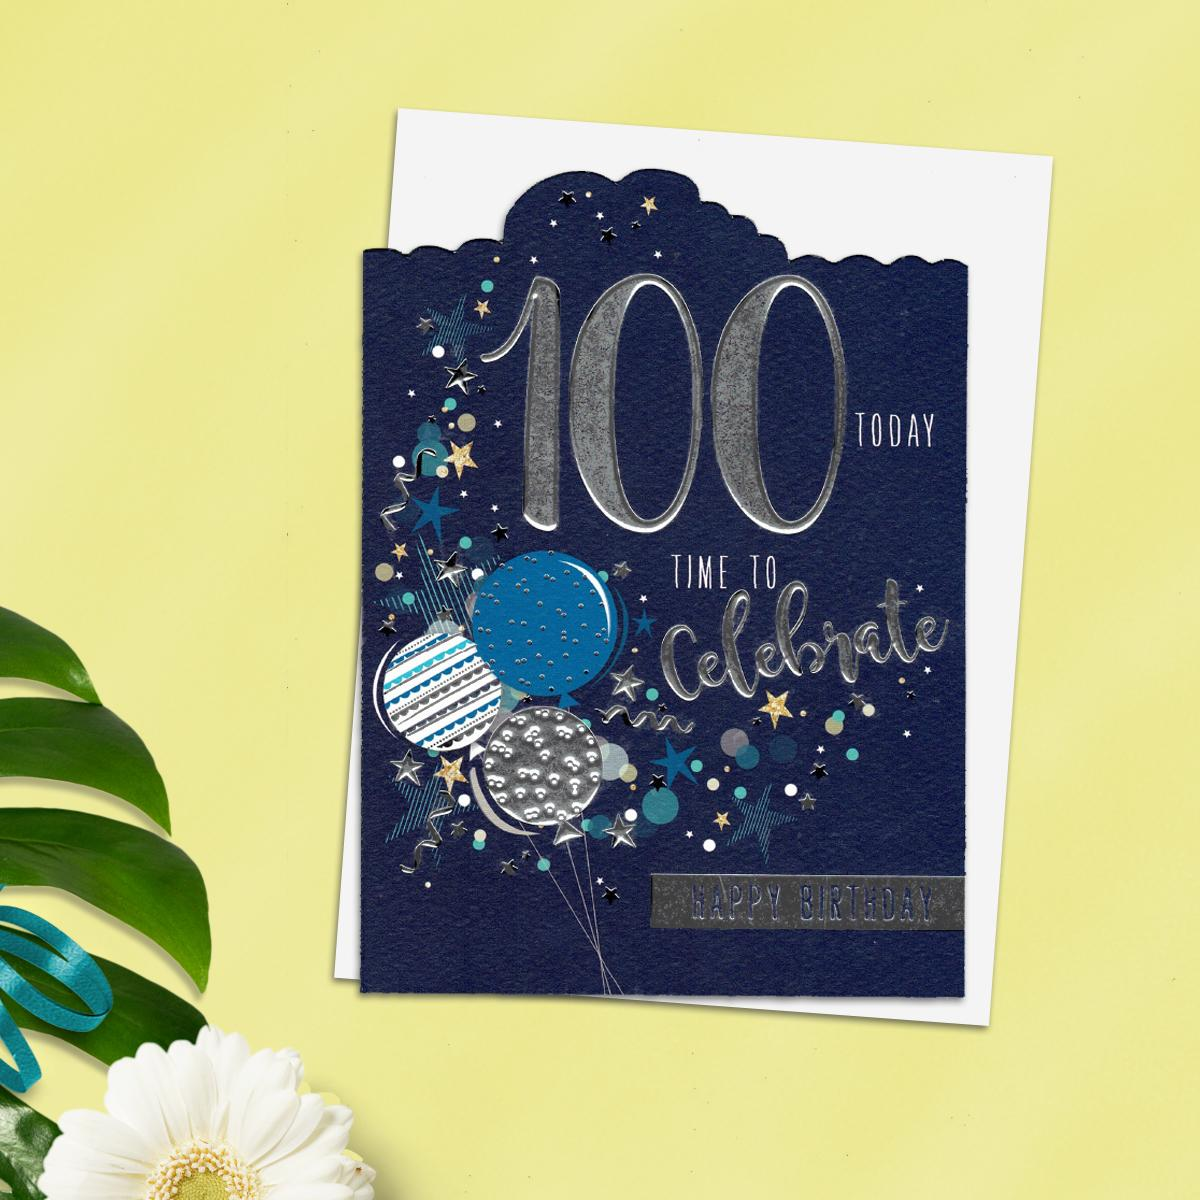 100th Time To Celebrate Birthday Design Alongside Its White Envelope